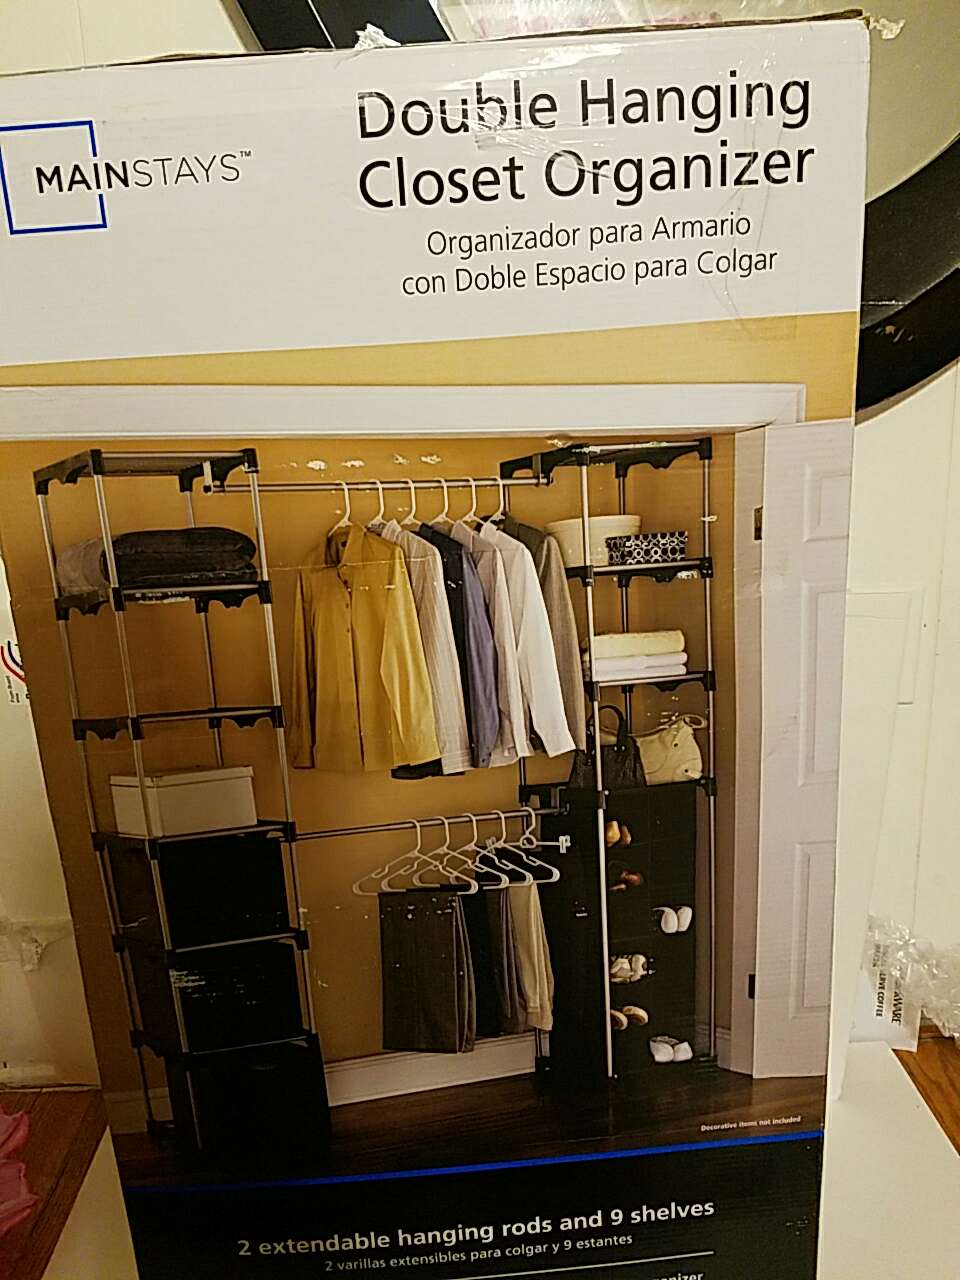 letgo mainstays double hanging clos in pardeesville pa. Black Bedroom Furniture Sets. Home Design Ideas